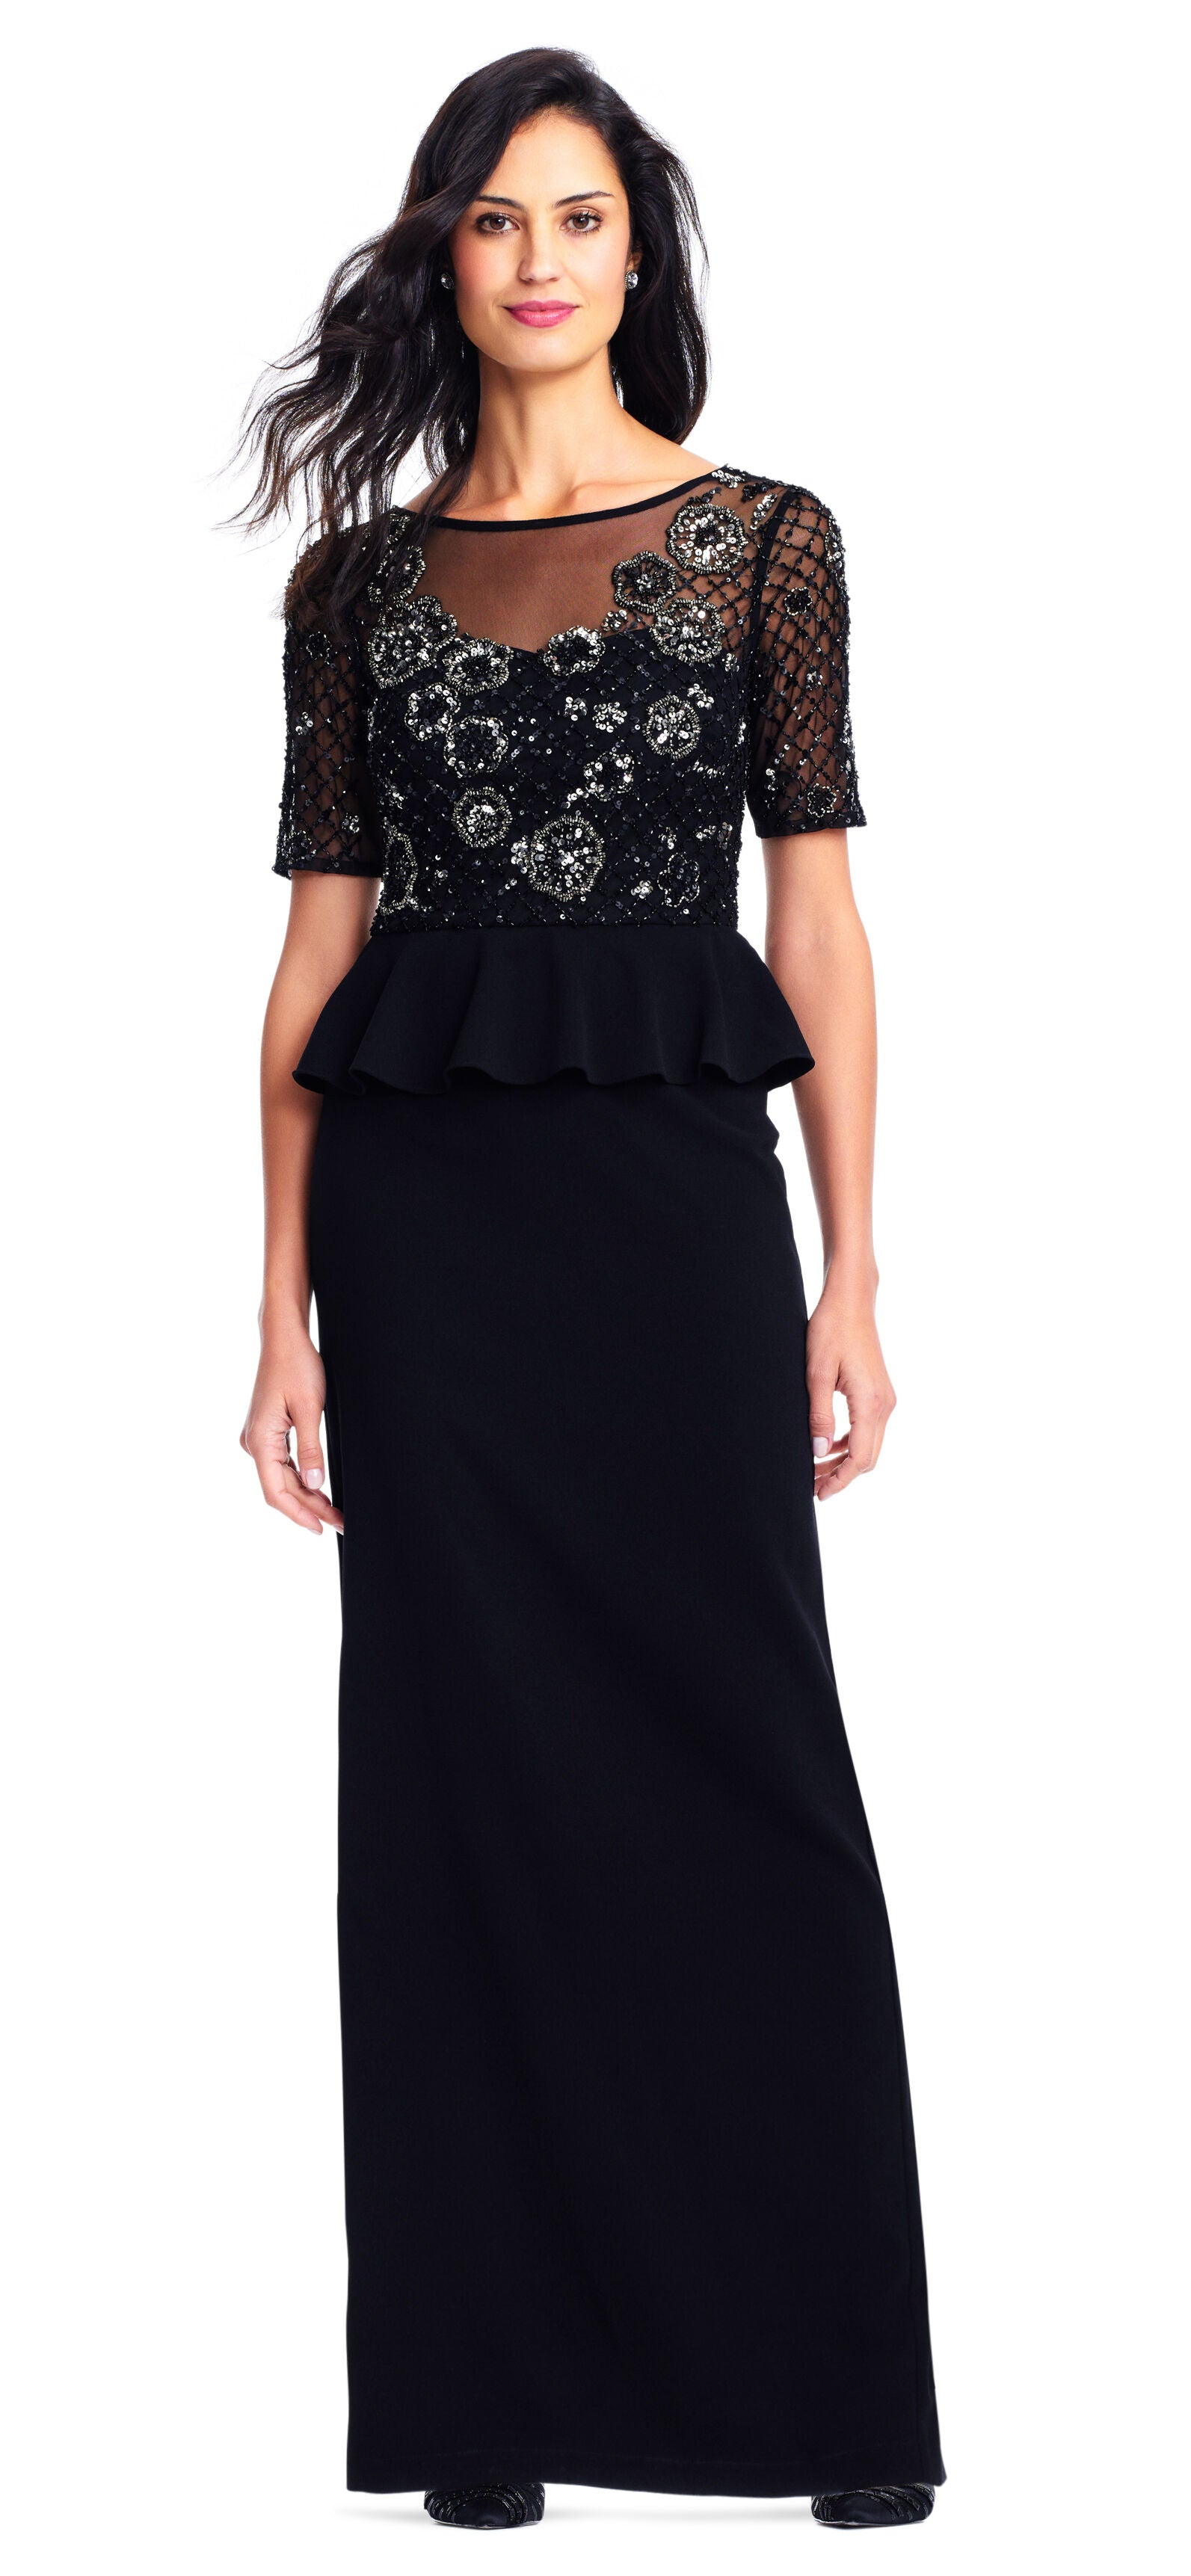 Adrianna Papell - AP1E202890 Embellished Short Sleeves Peplum Gown in Black and Silver